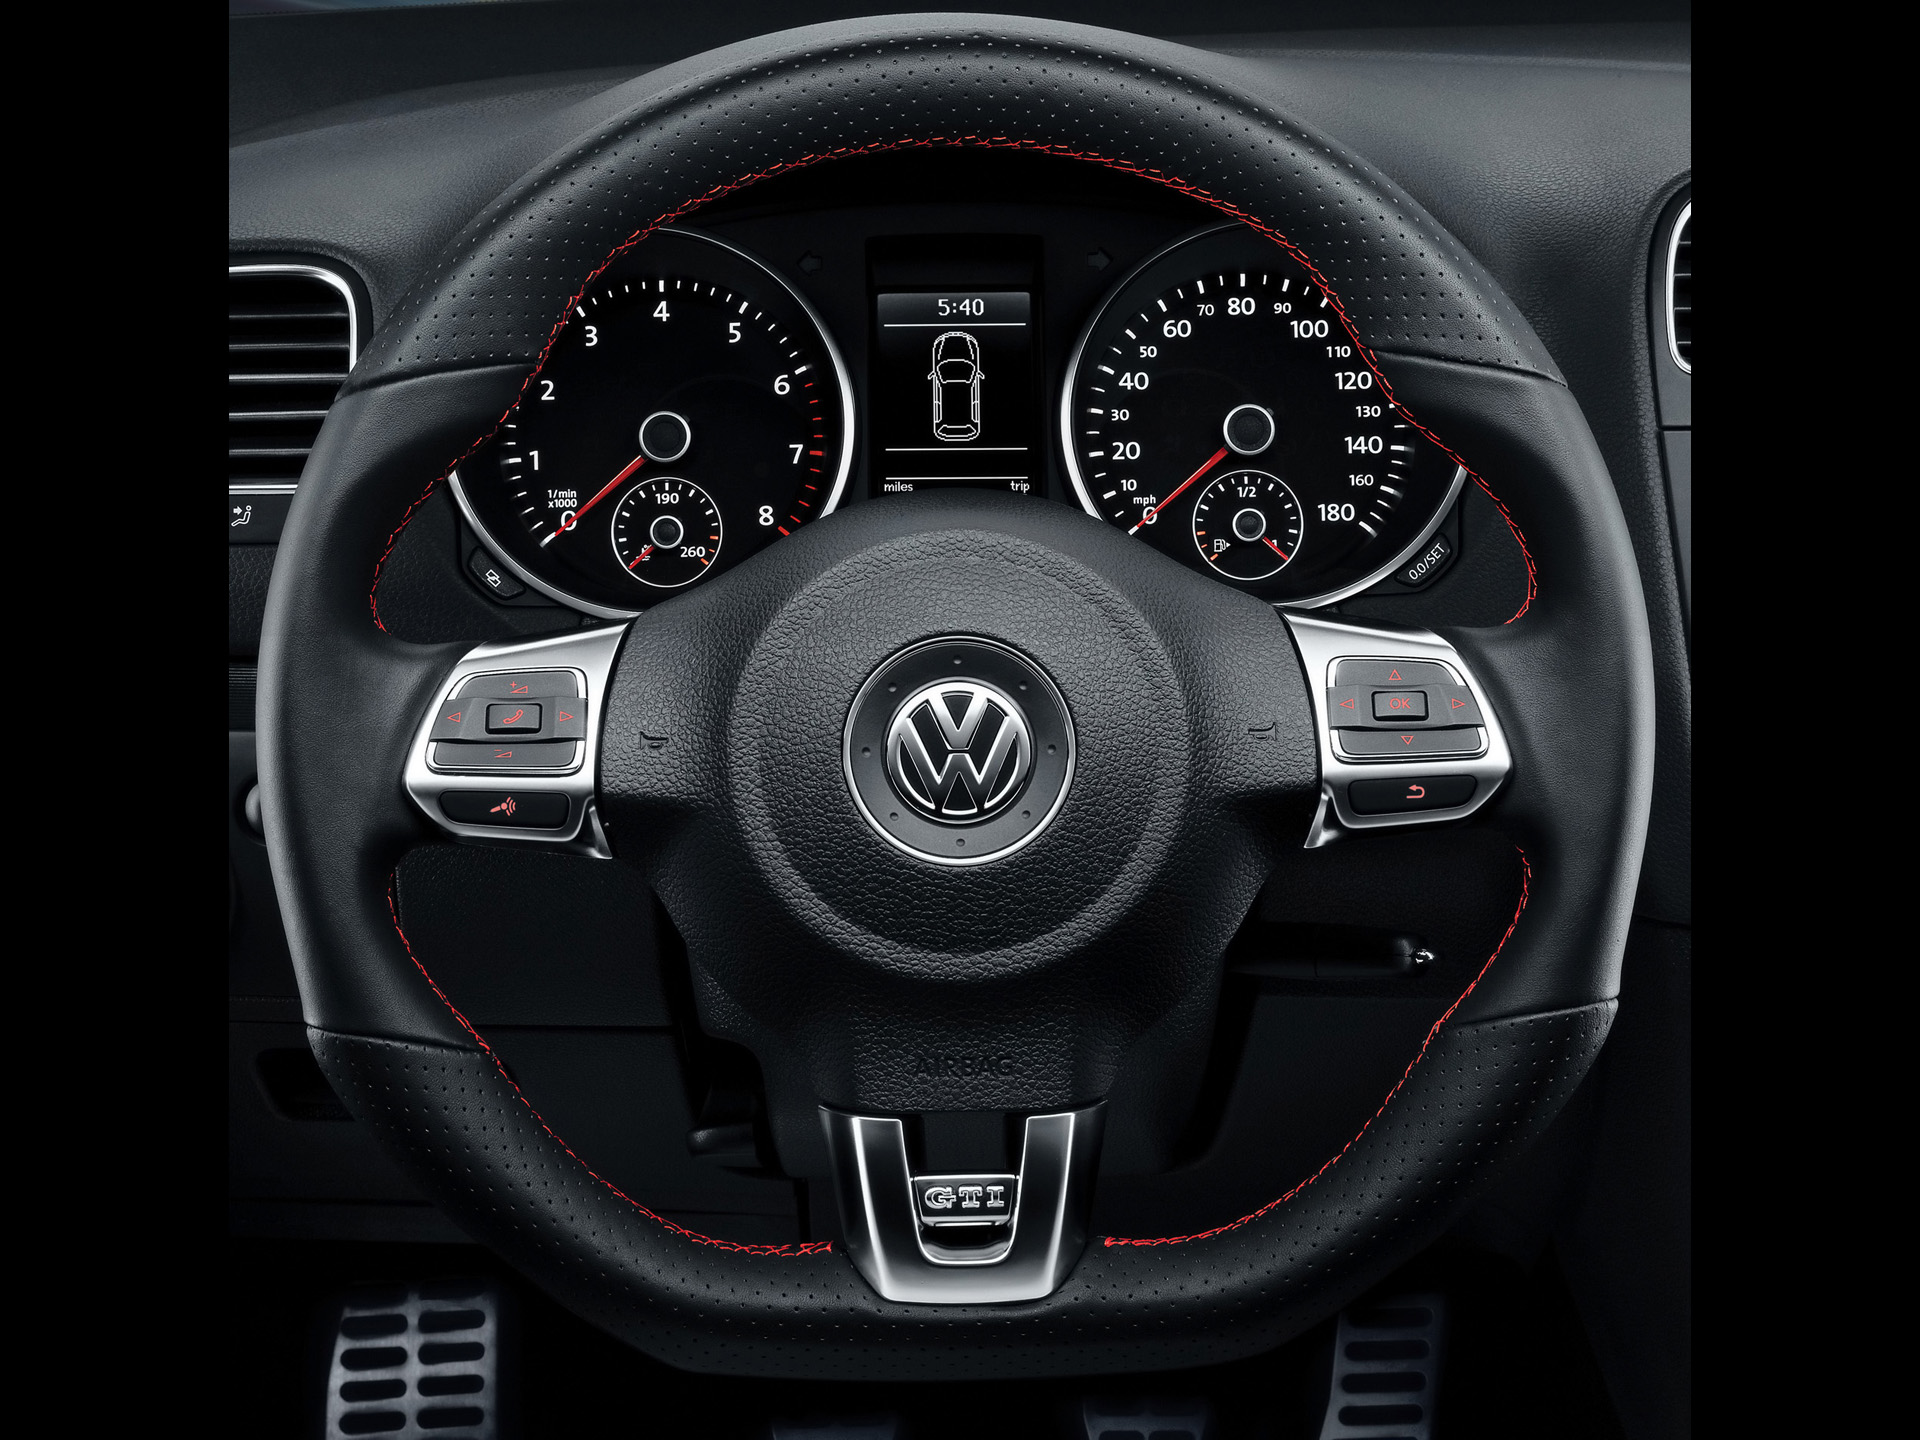 volkswagen gti lenkrad hintergrundbilder volkswagen gti. Black Bedroom Furniture Sets. Home Design Ideas